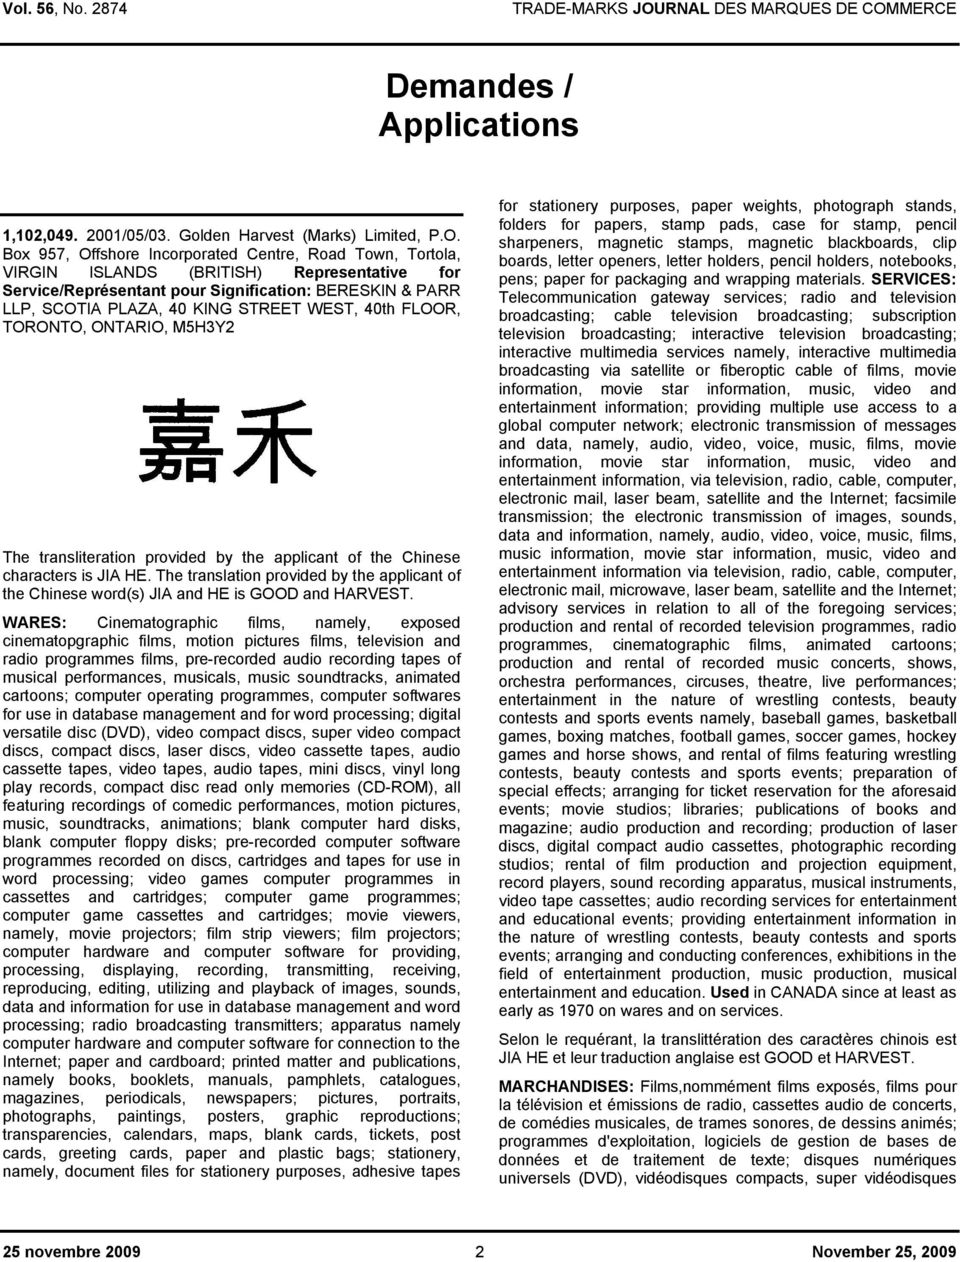 40th FLOOR, TORONTO, ONTARIO, M5H3Y2 The transliteration provided by the applicant of the Chinese characters is JIA HE.